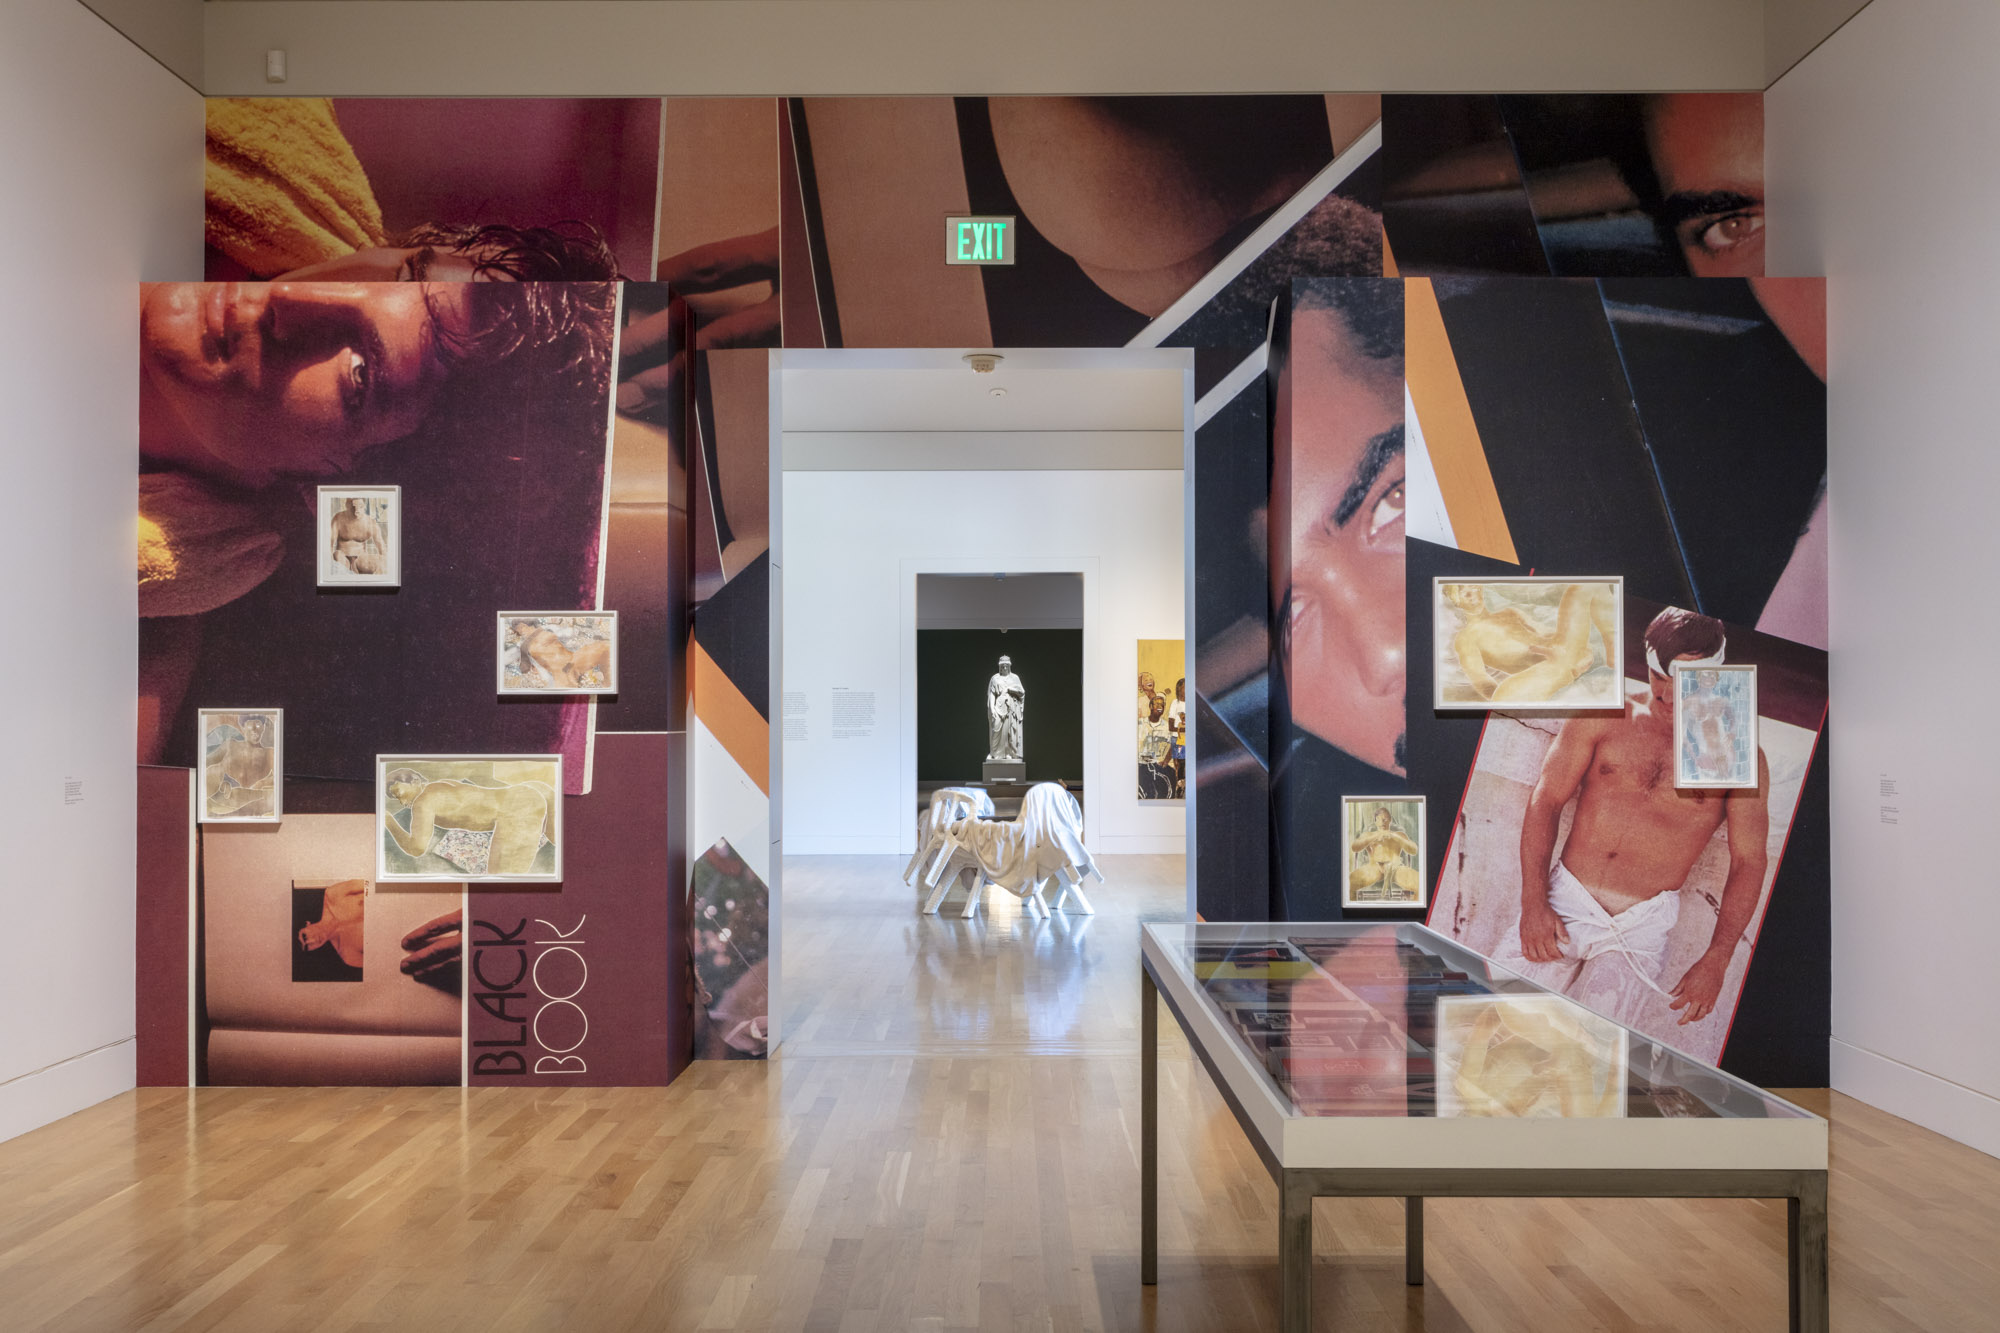 """An installation view of Monica Maioli's work at """"Made in L.A. 2020: a version"""" at The Huntington Library, Art Museum, and Botanical Gardens, San Marino. 